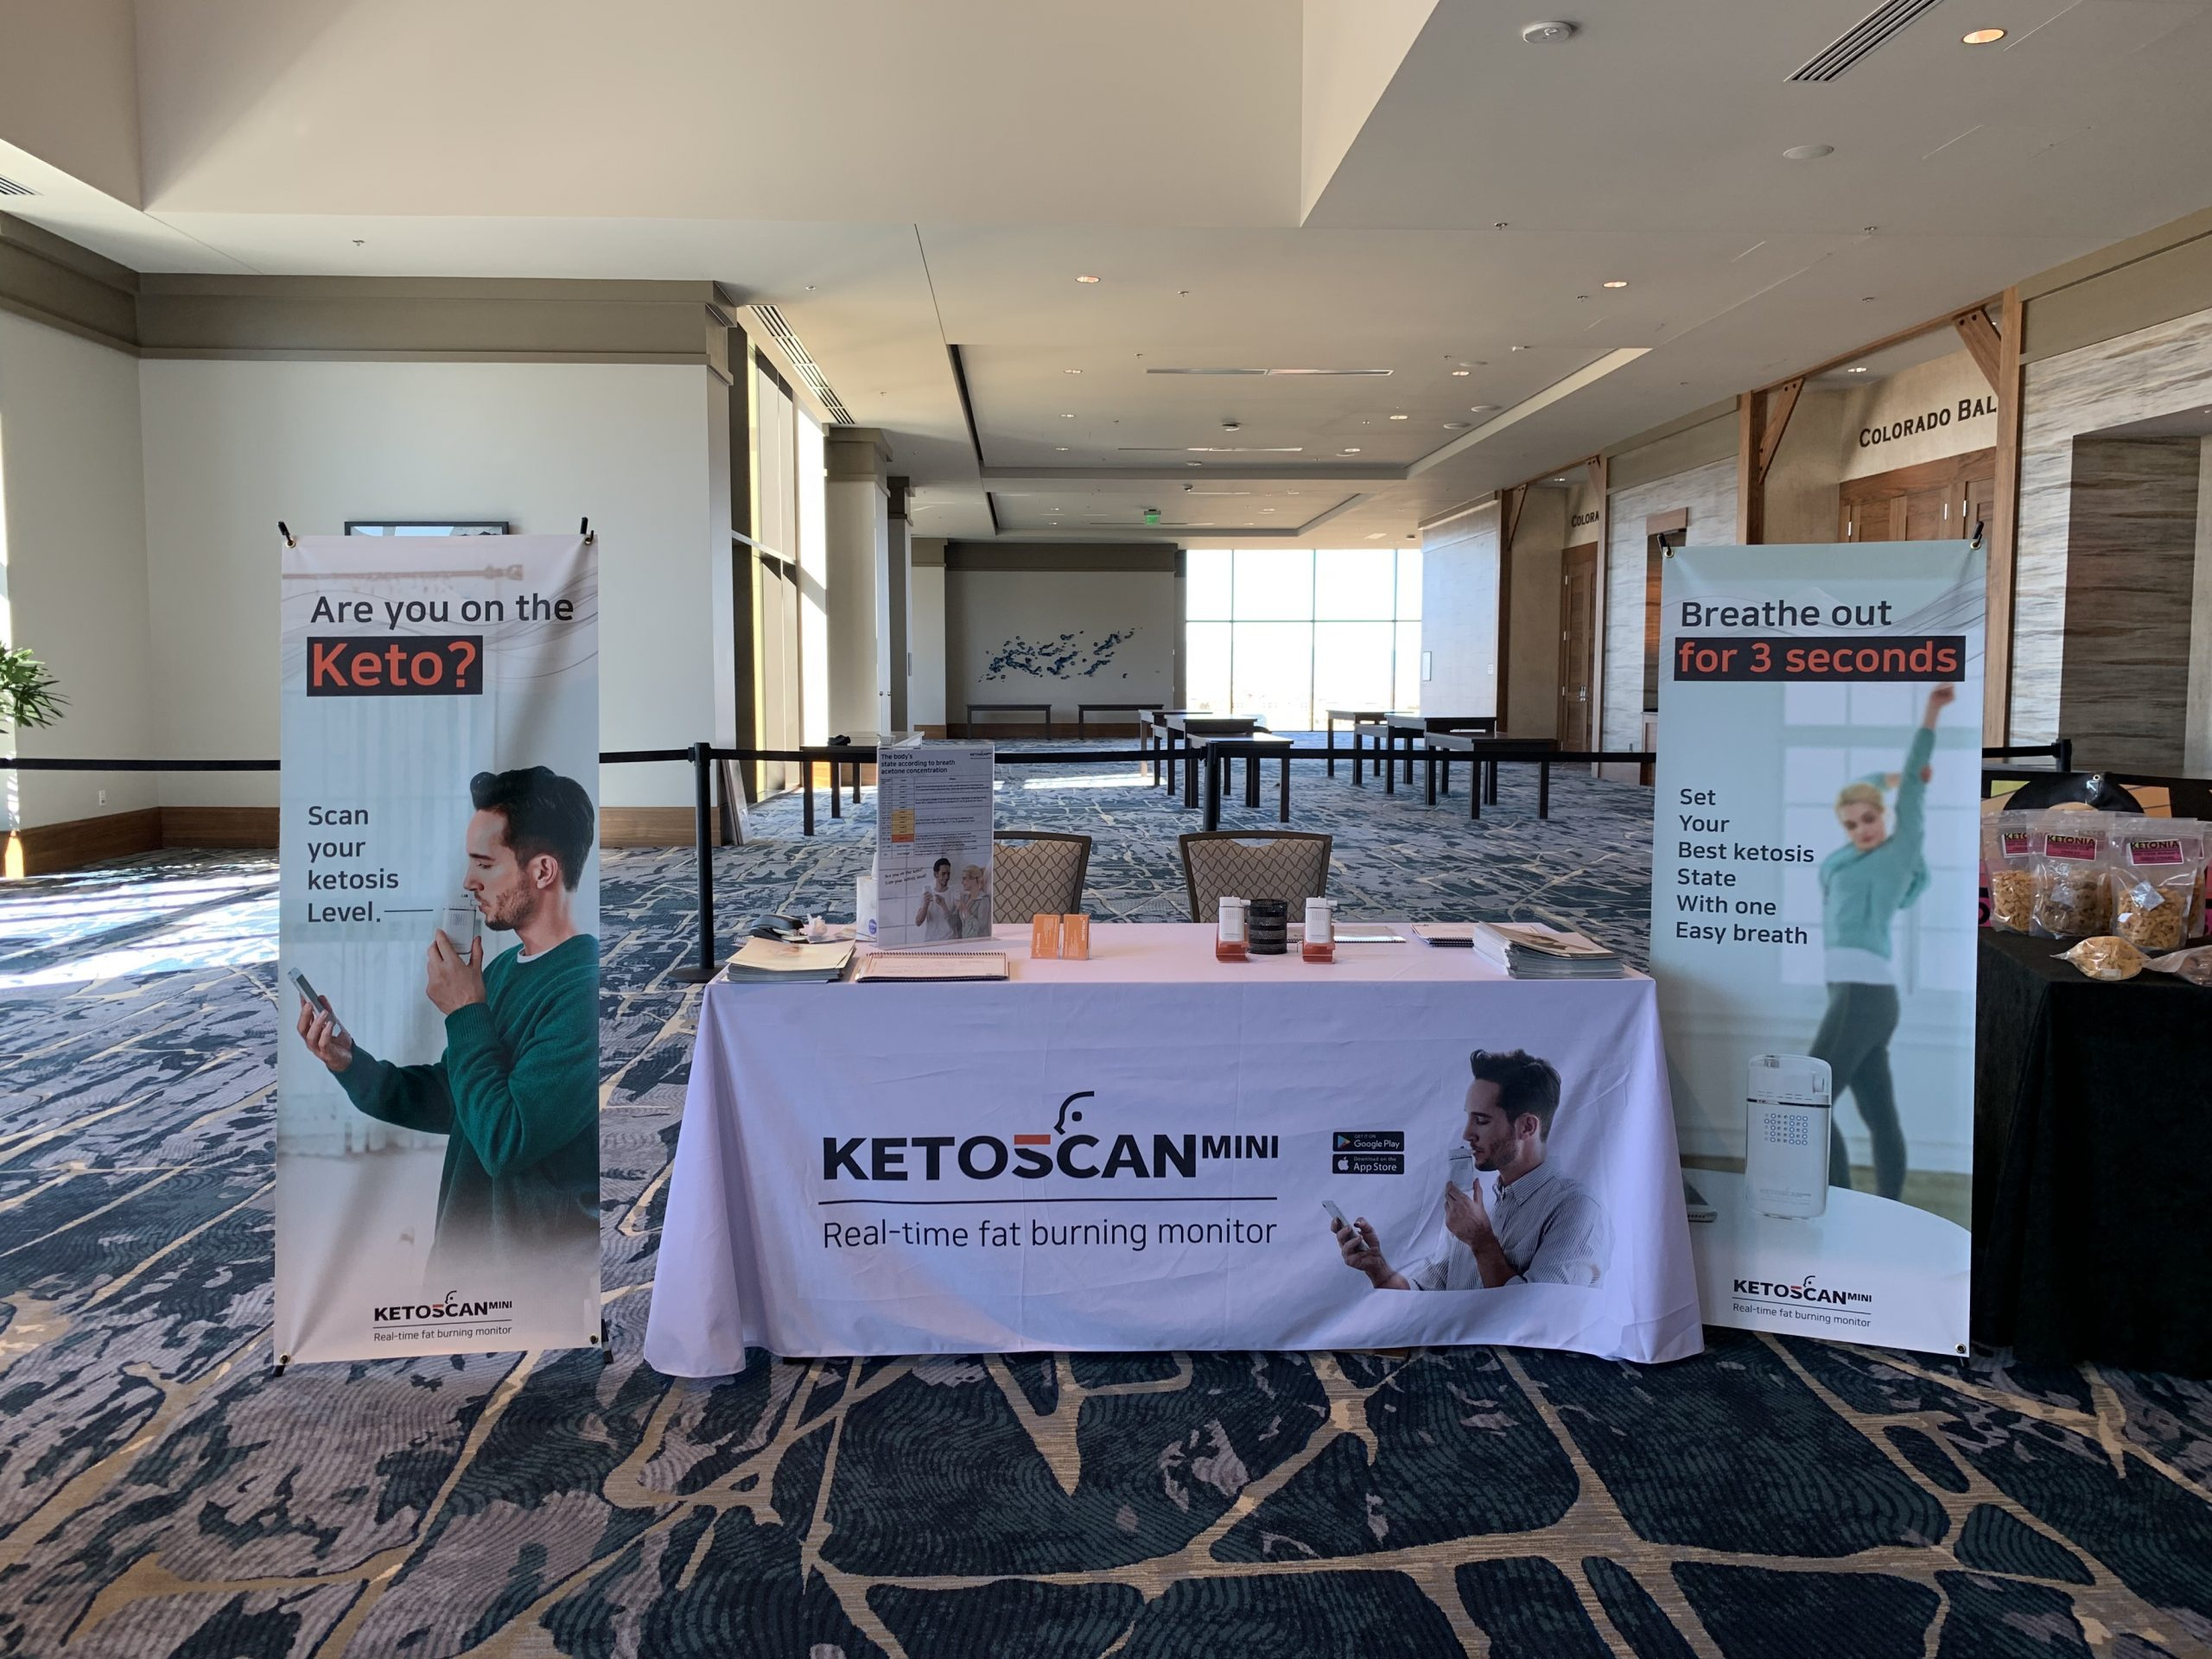 [Low Carb Denver 2019] Ketone breath meter, KETOSCAN mini was introduced to the low carb community for the first time